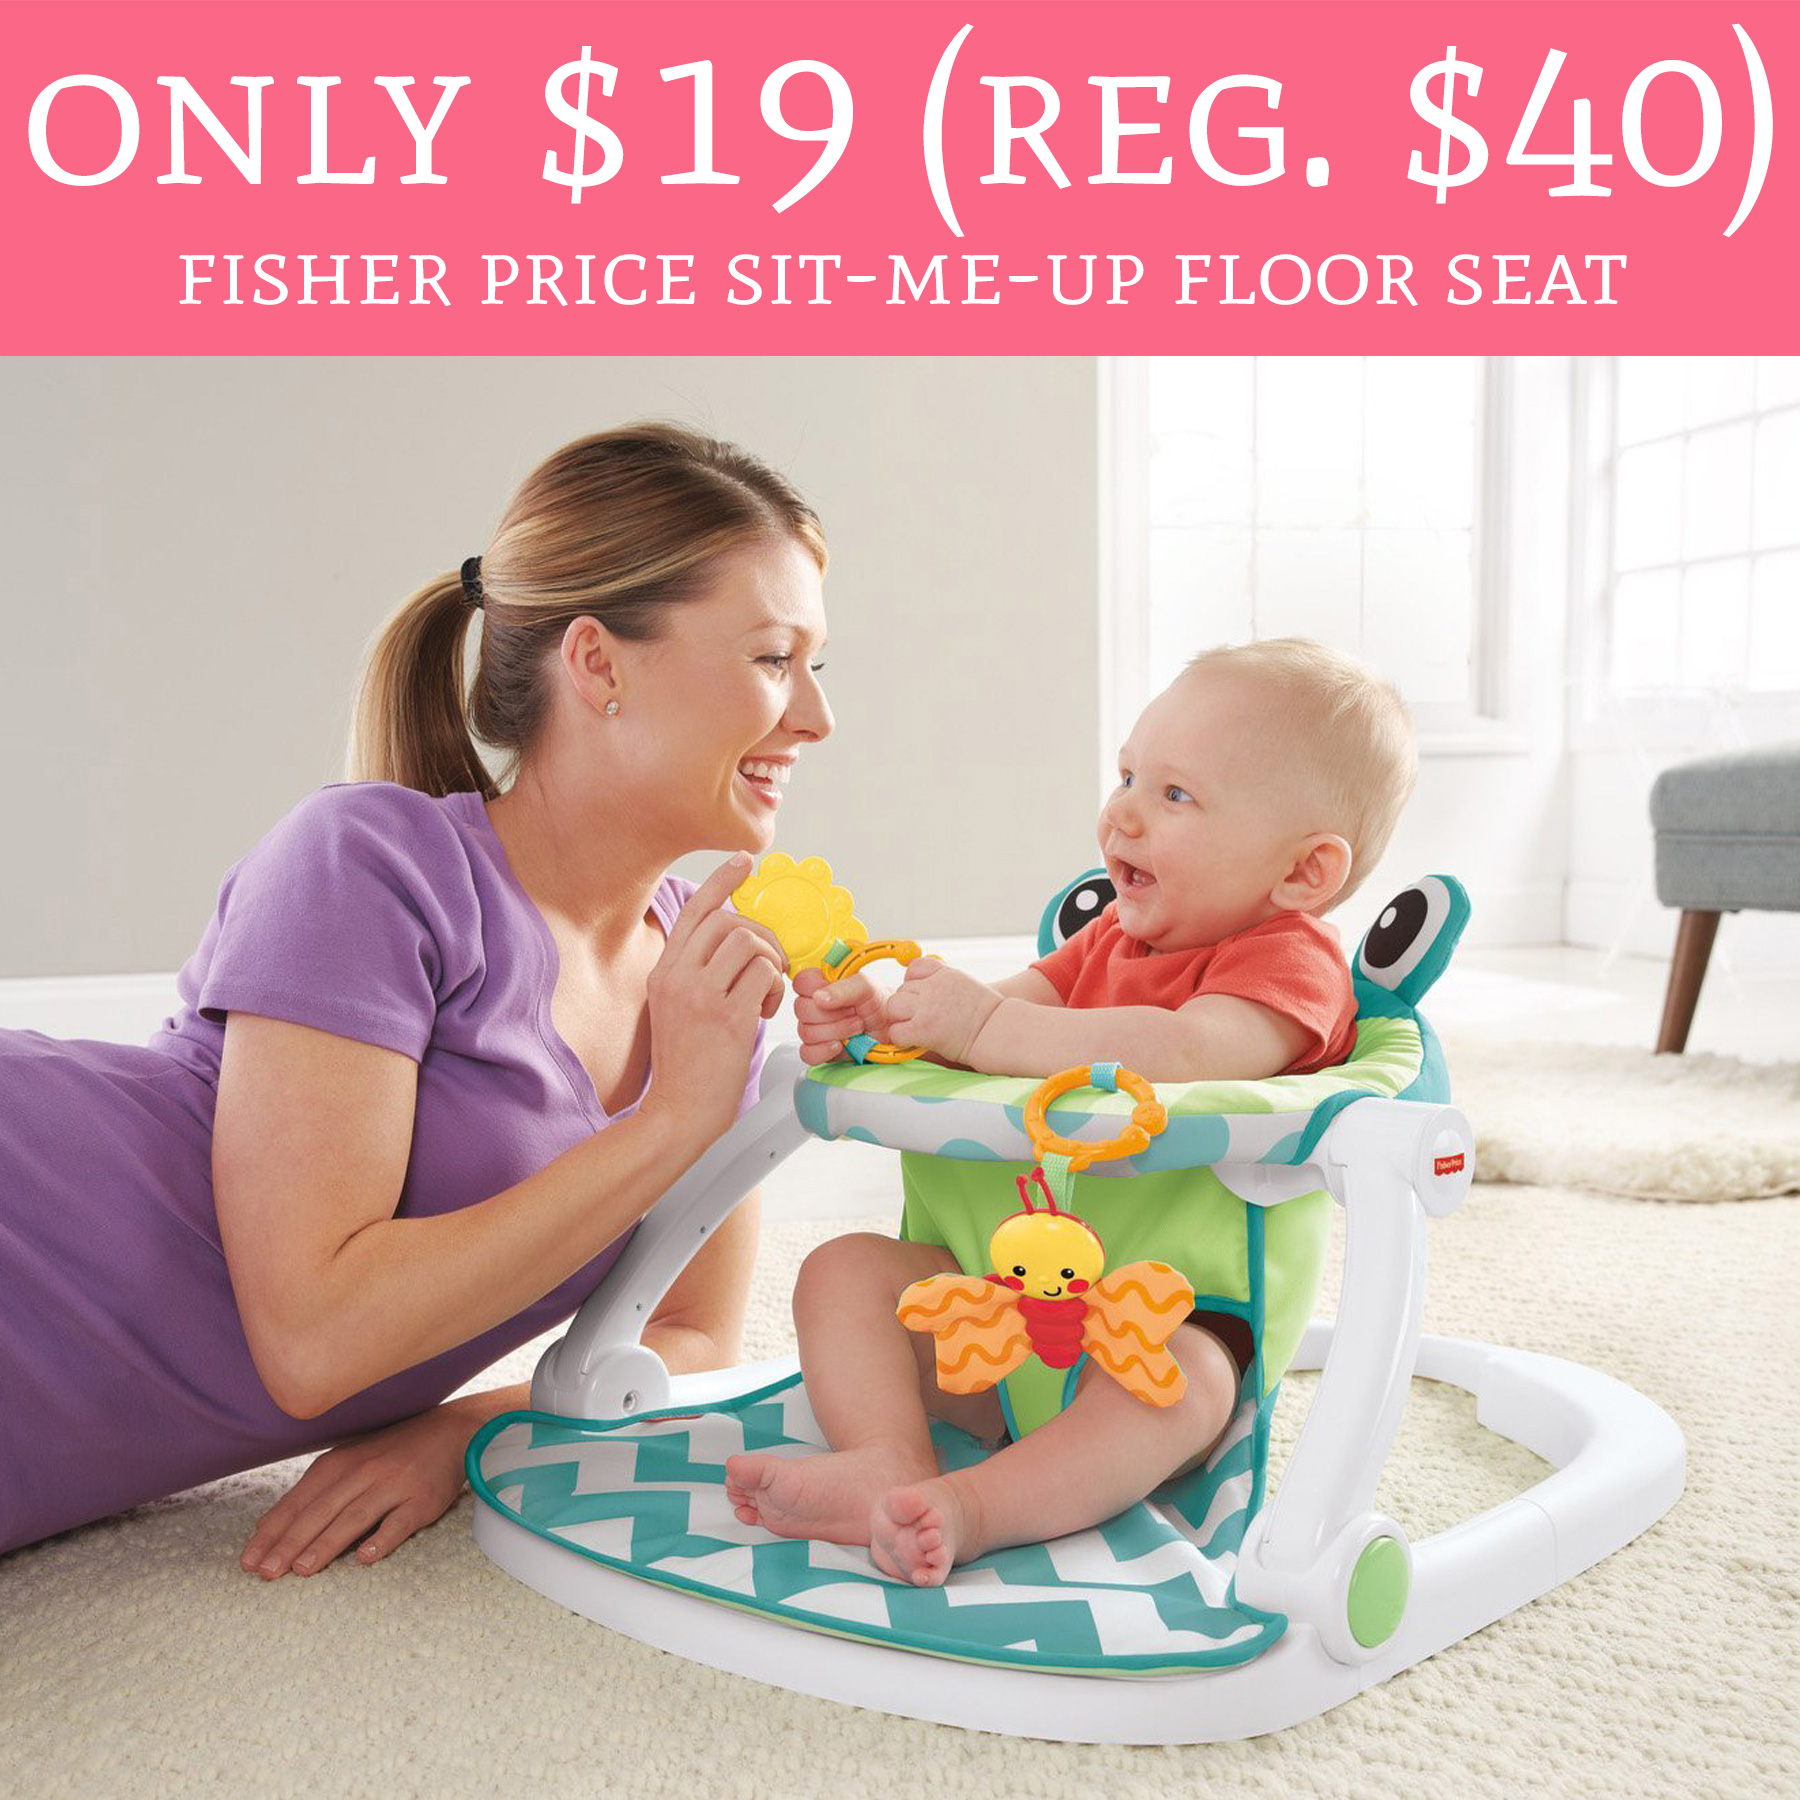 Smashing Parents To Only Fisher Price Seat Deal Fisher Price Sit Me Up Lion Fisher Price Sit Me Up Chair Calling All Parents baby Fisher Price Sit Me Up